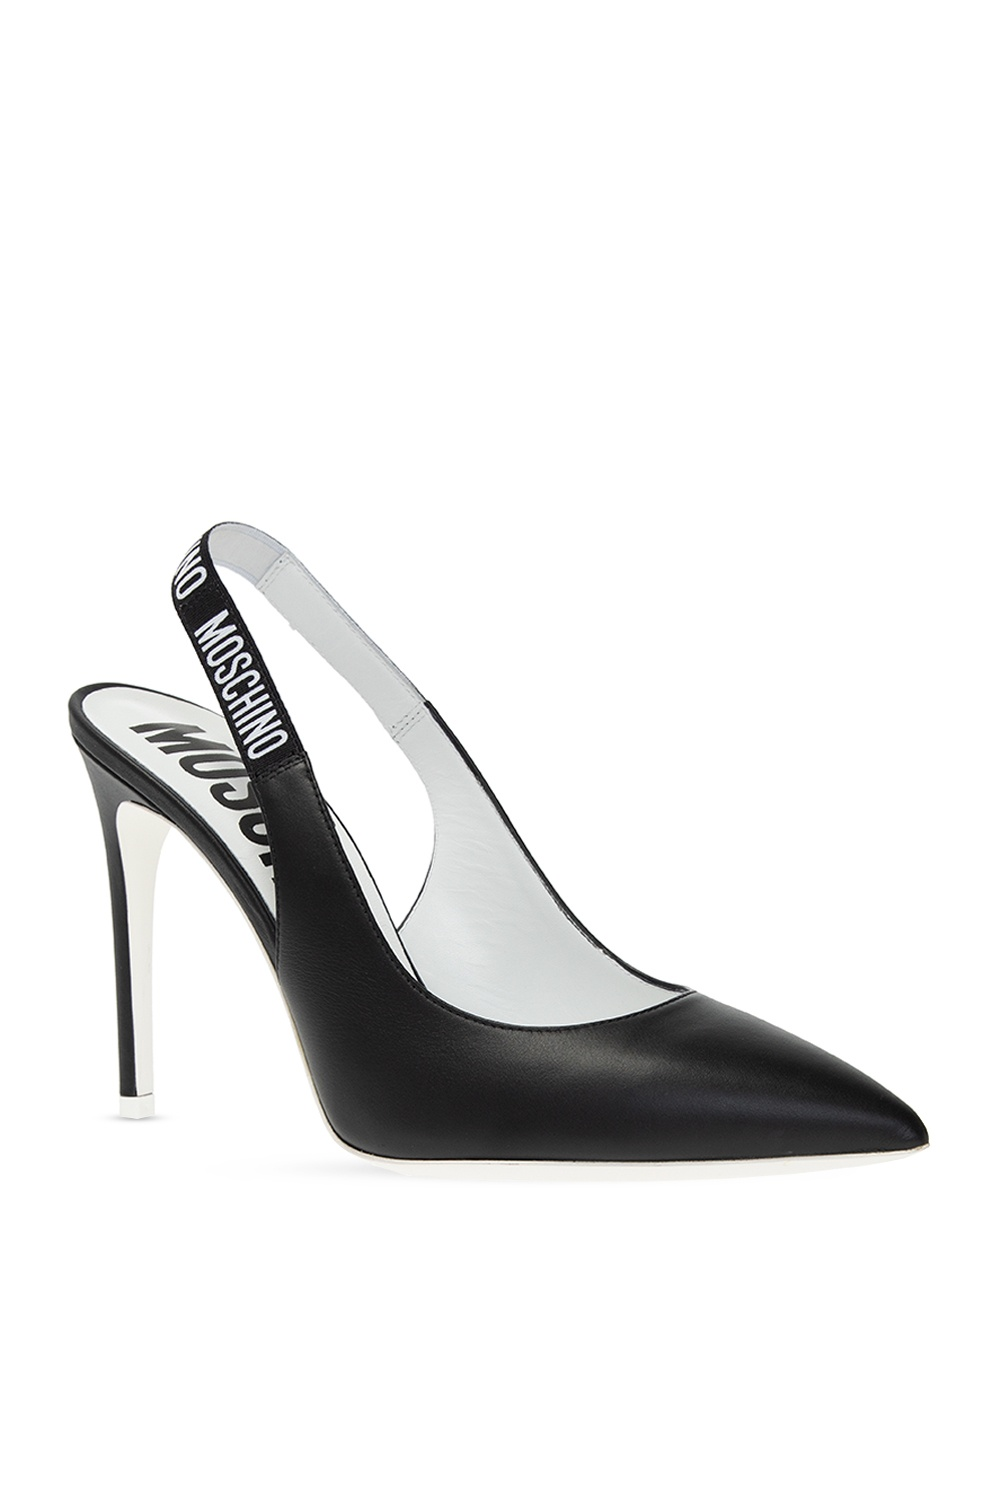 Moschino Stiletto pumps with logo